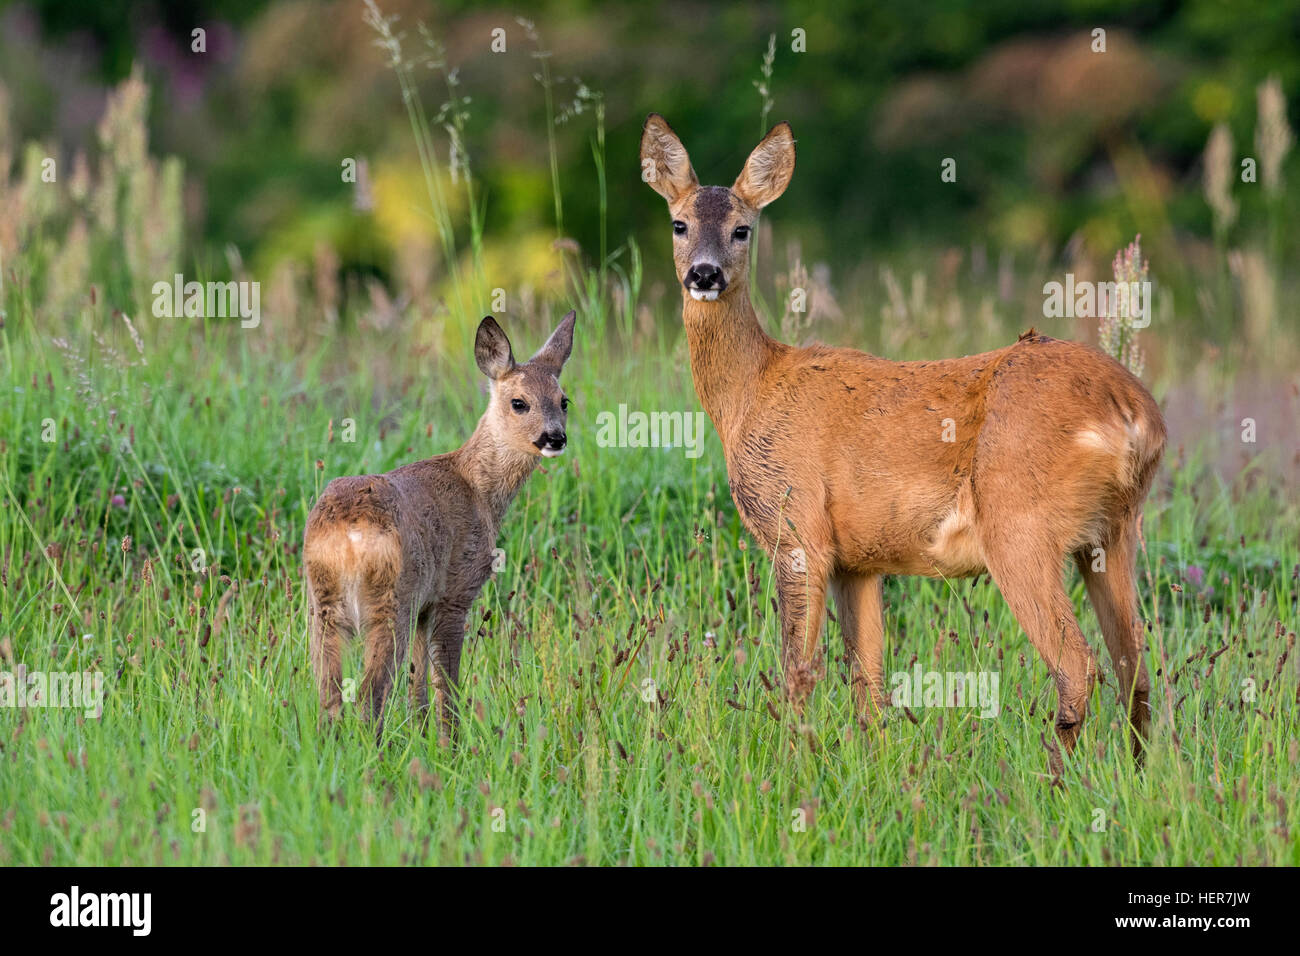 European roe deer (Capreolus capreolus) female with fawn in grassland at forest's edge in summer Stock Photo